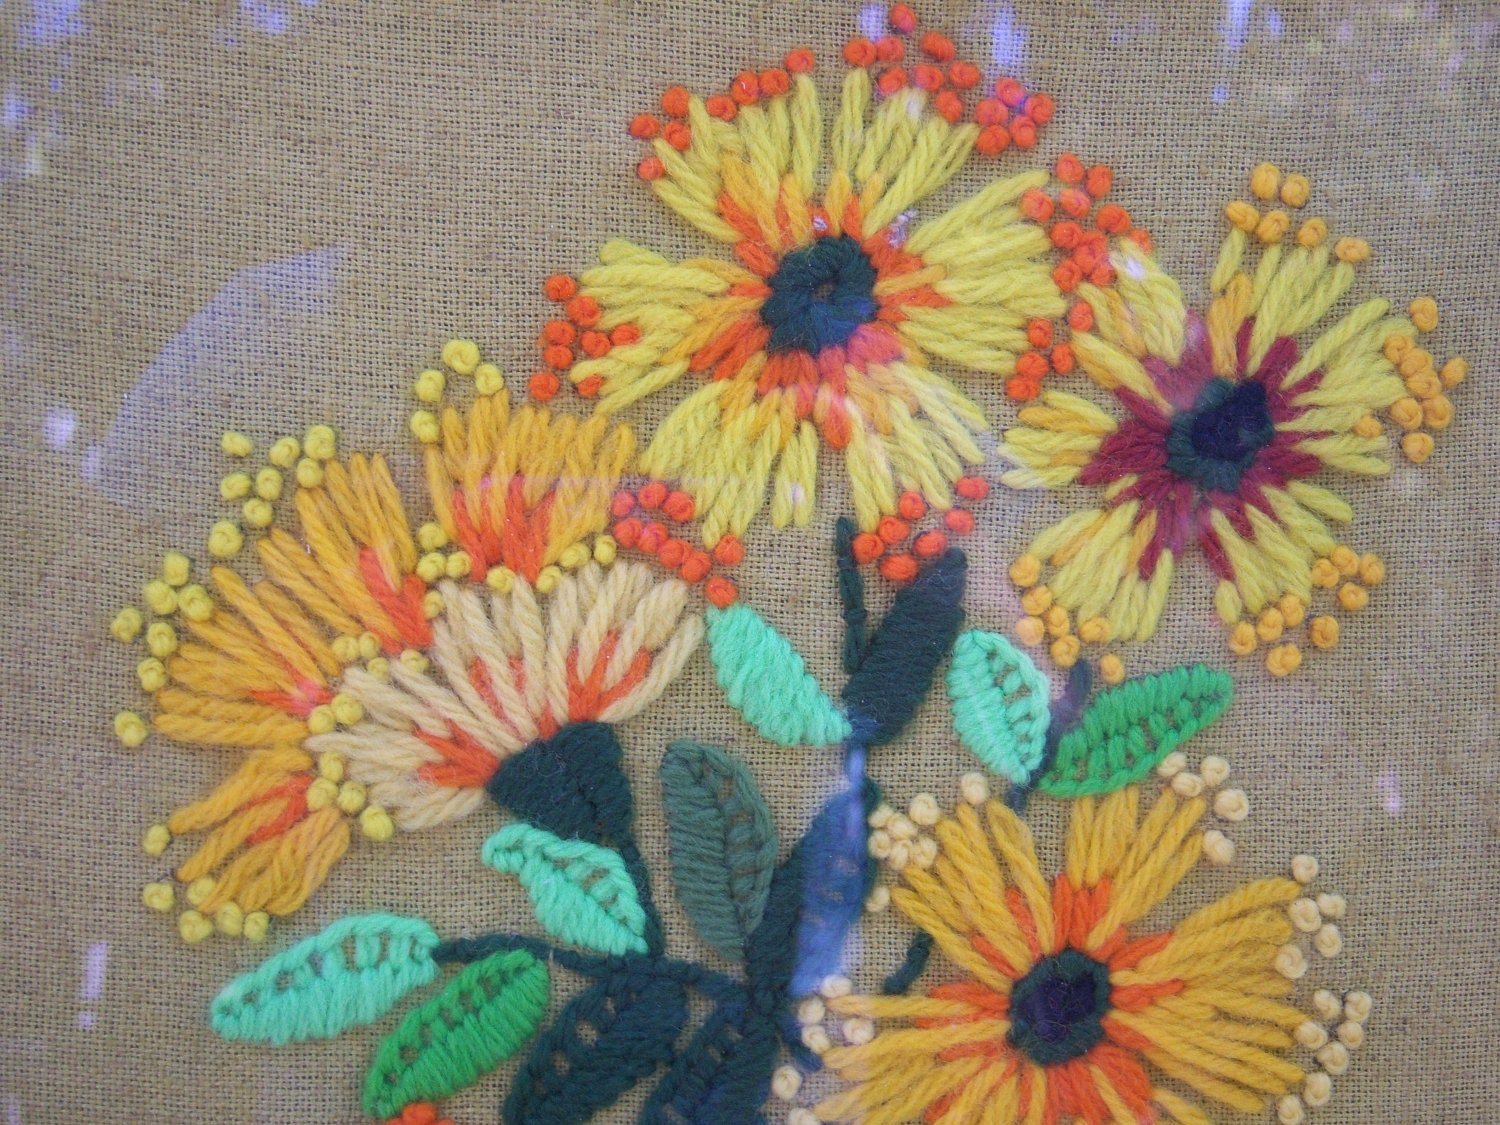 Vintage floral crewel embroidery by katzenfraulein on etsy